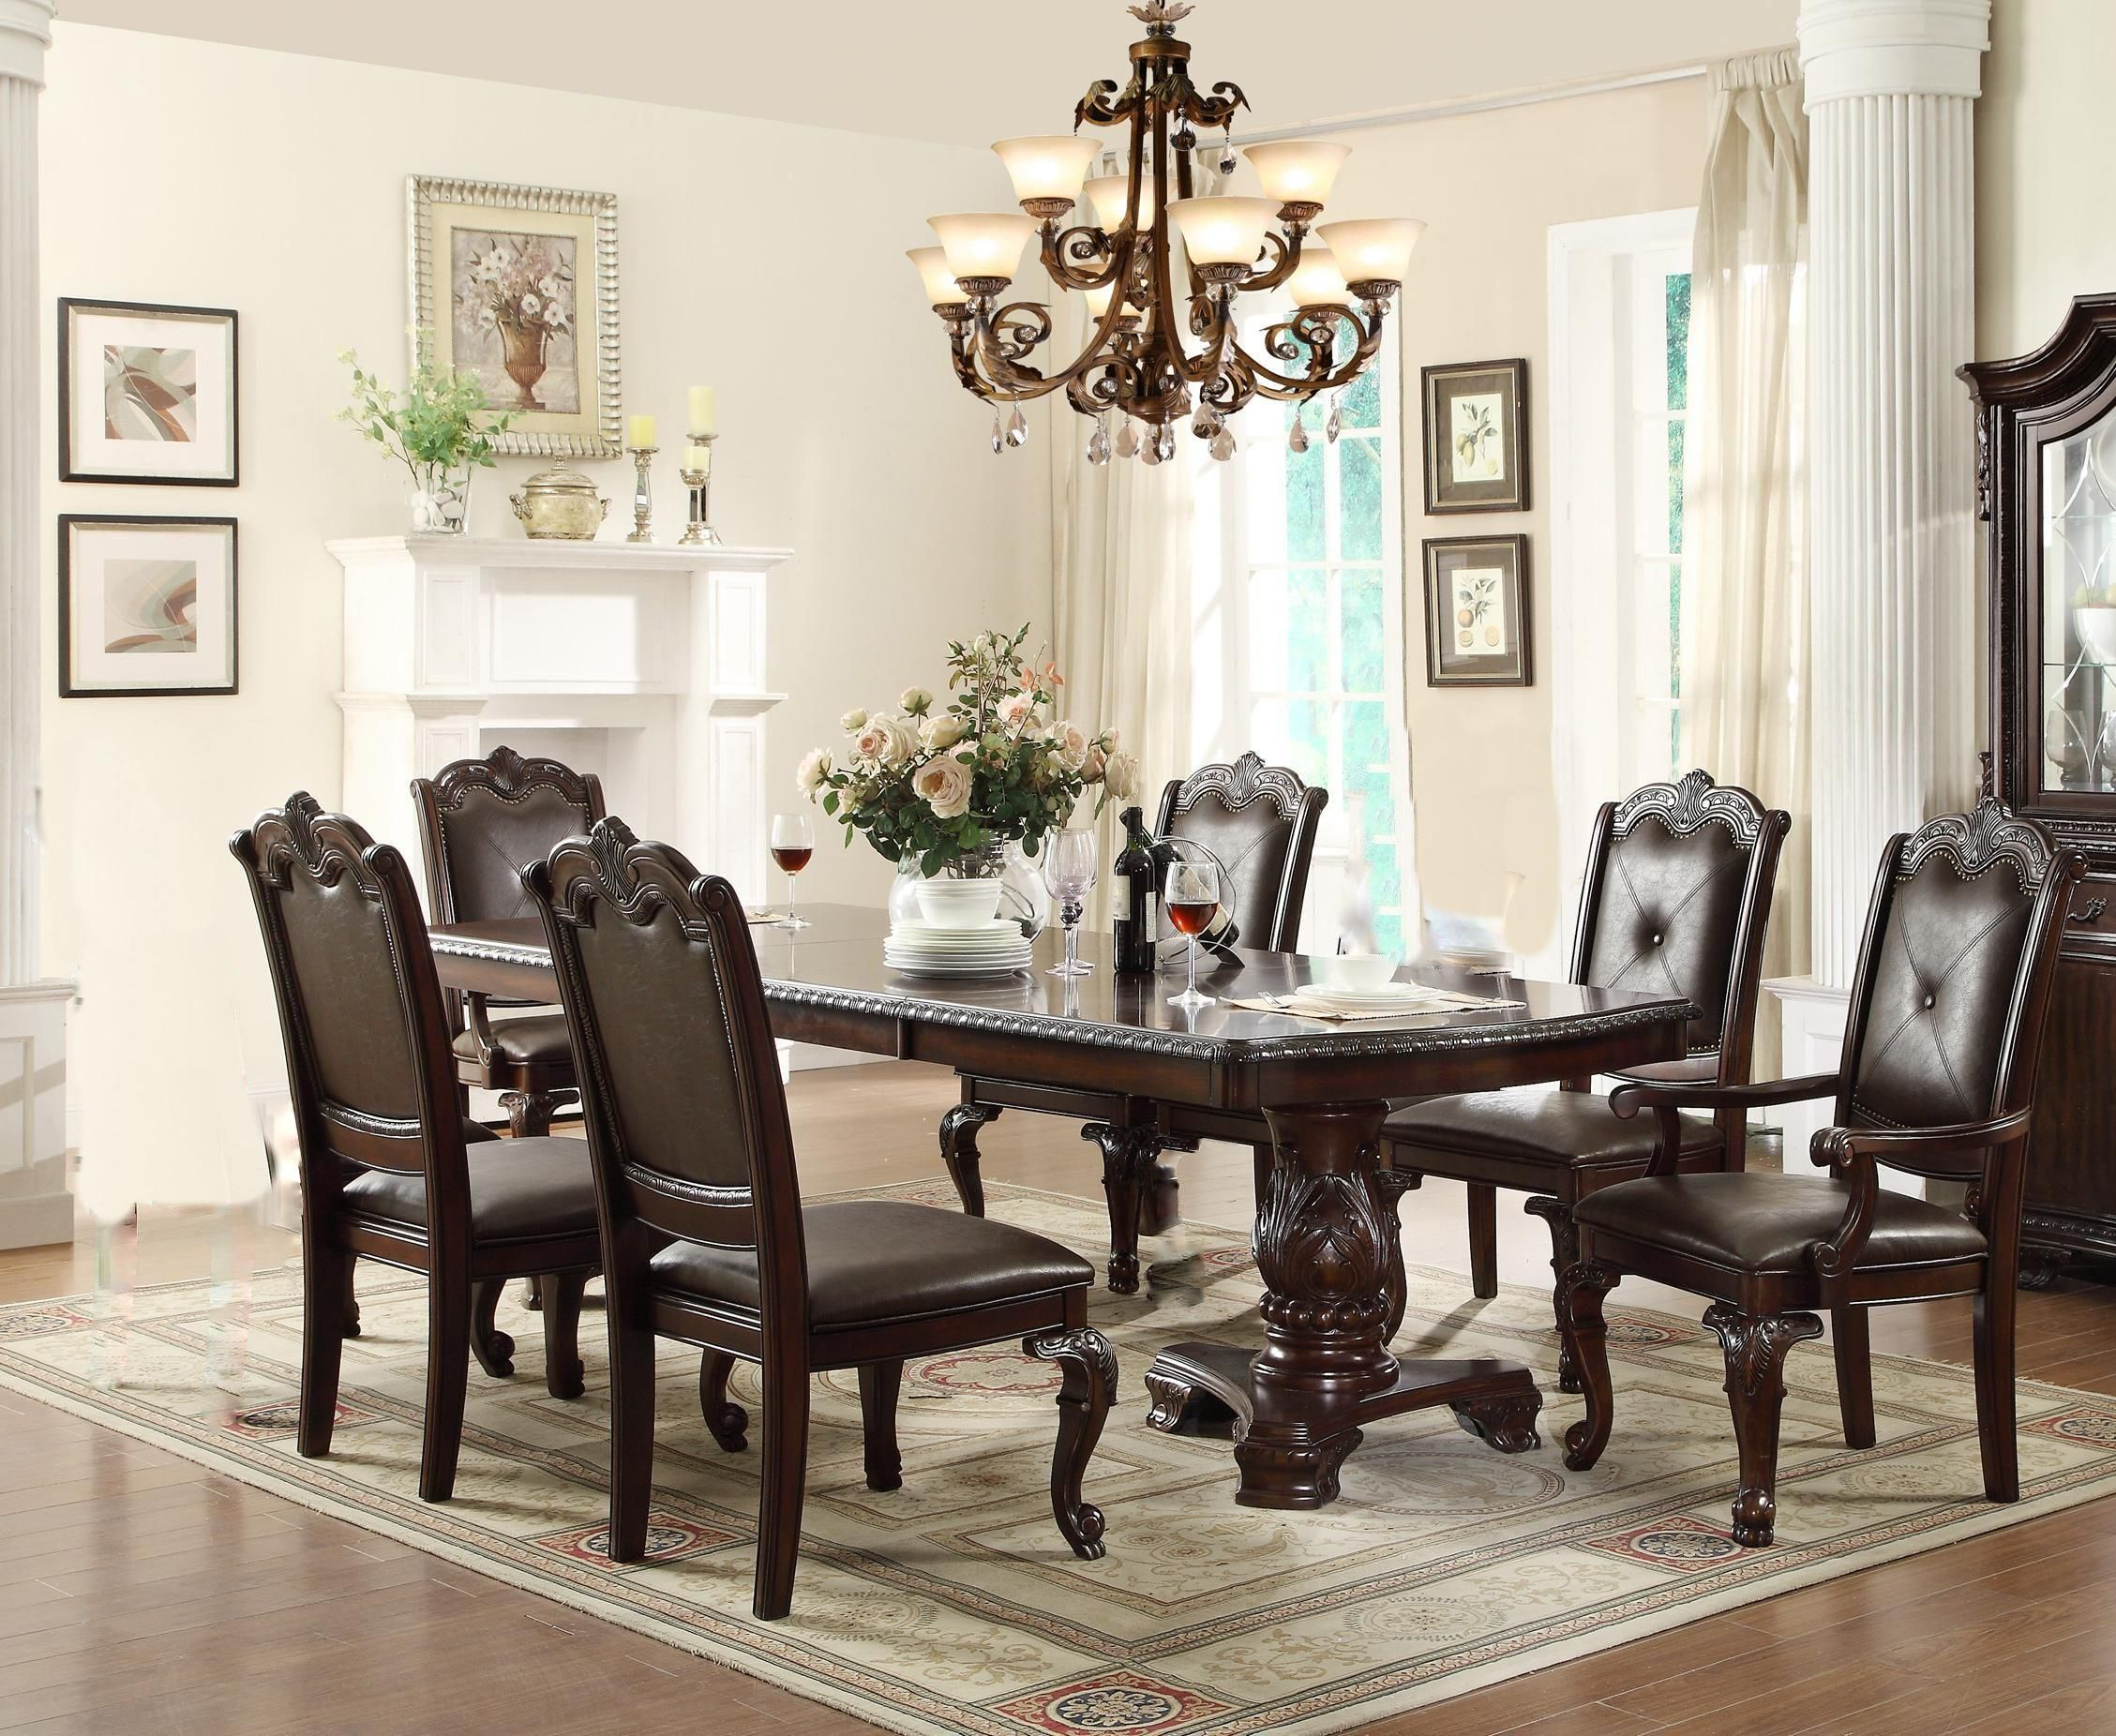 Kiera 7 Pc Dining Table and Chair by Crown Mark